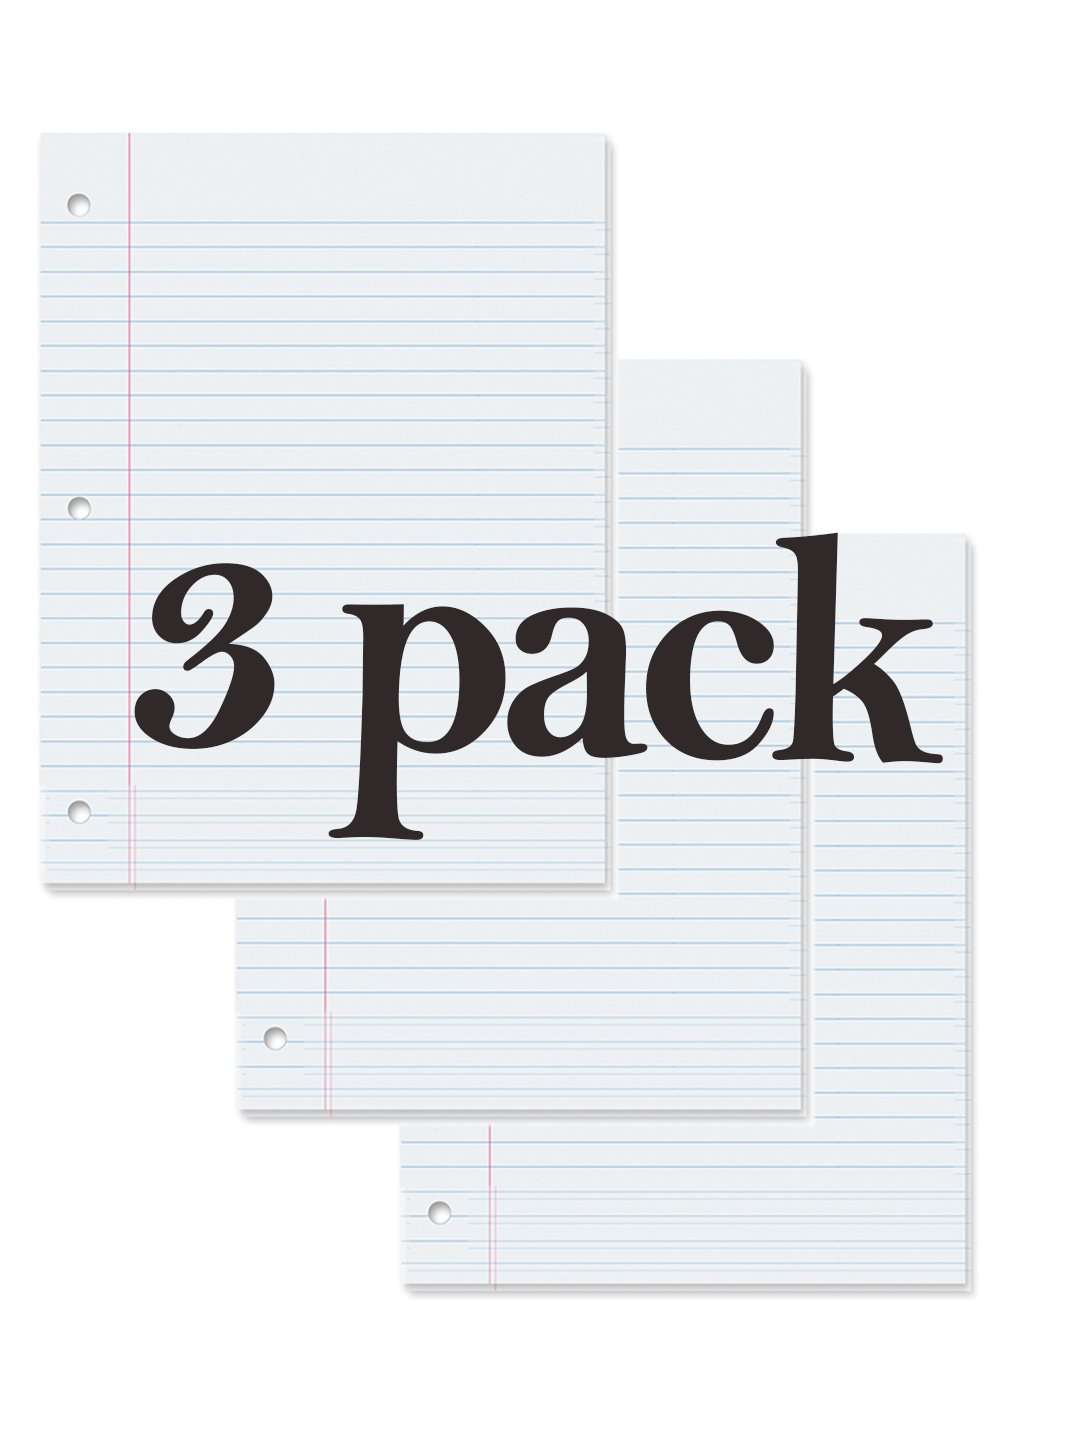 Filler Paper, Loose Leaf Paper, Wide Ruled Paper, 150 Sheets, 10-1/2'' x 8'', White, (3 Pack)